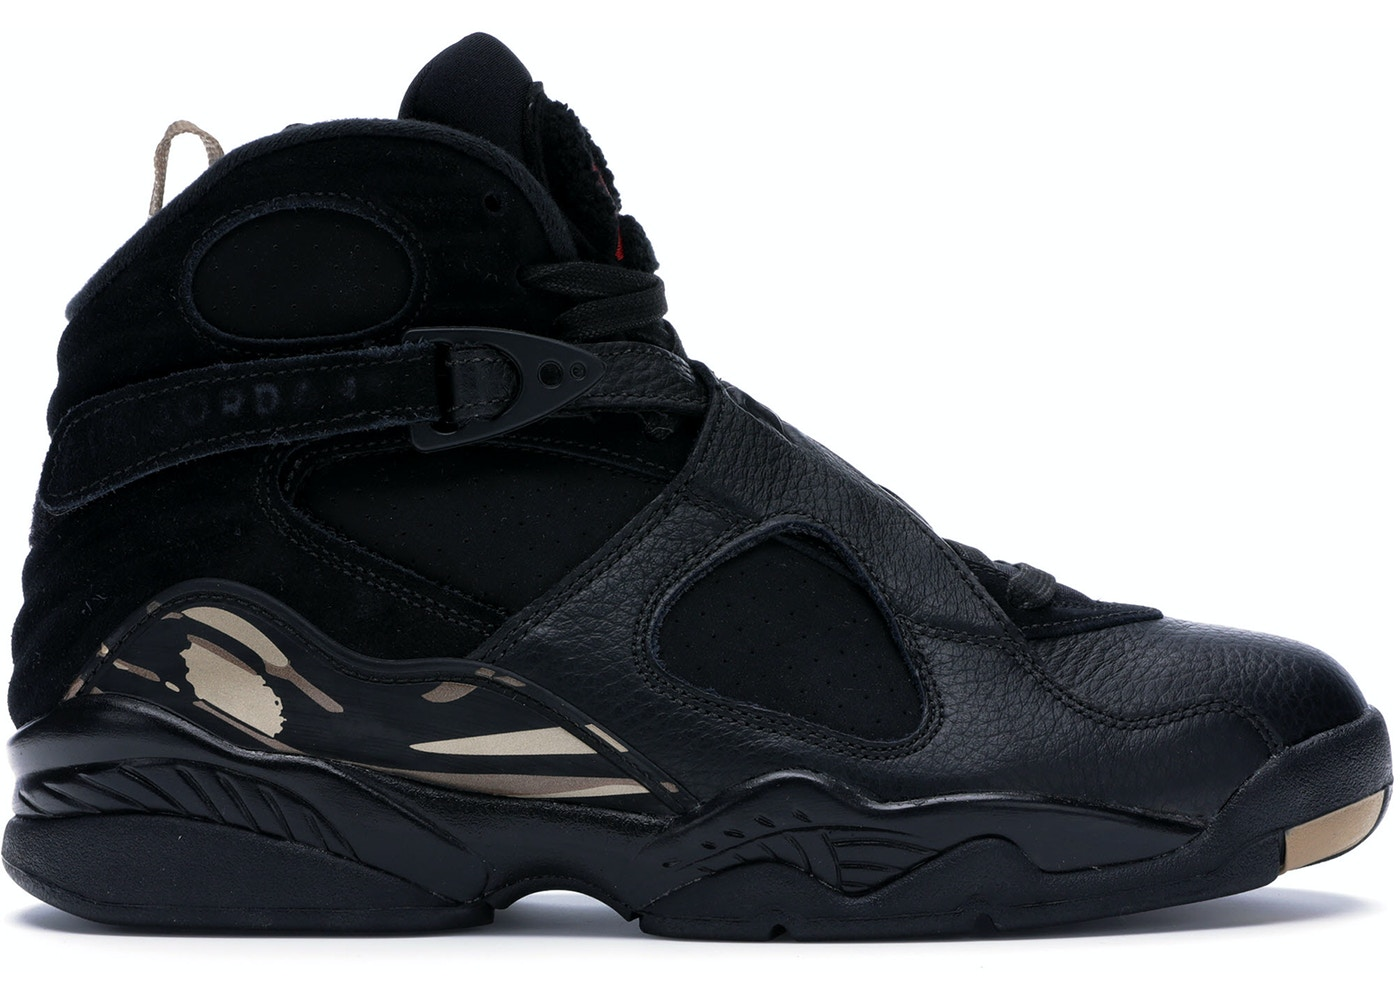 timeless design 820b4 dc79c Jordan 8 Retro OVO Black